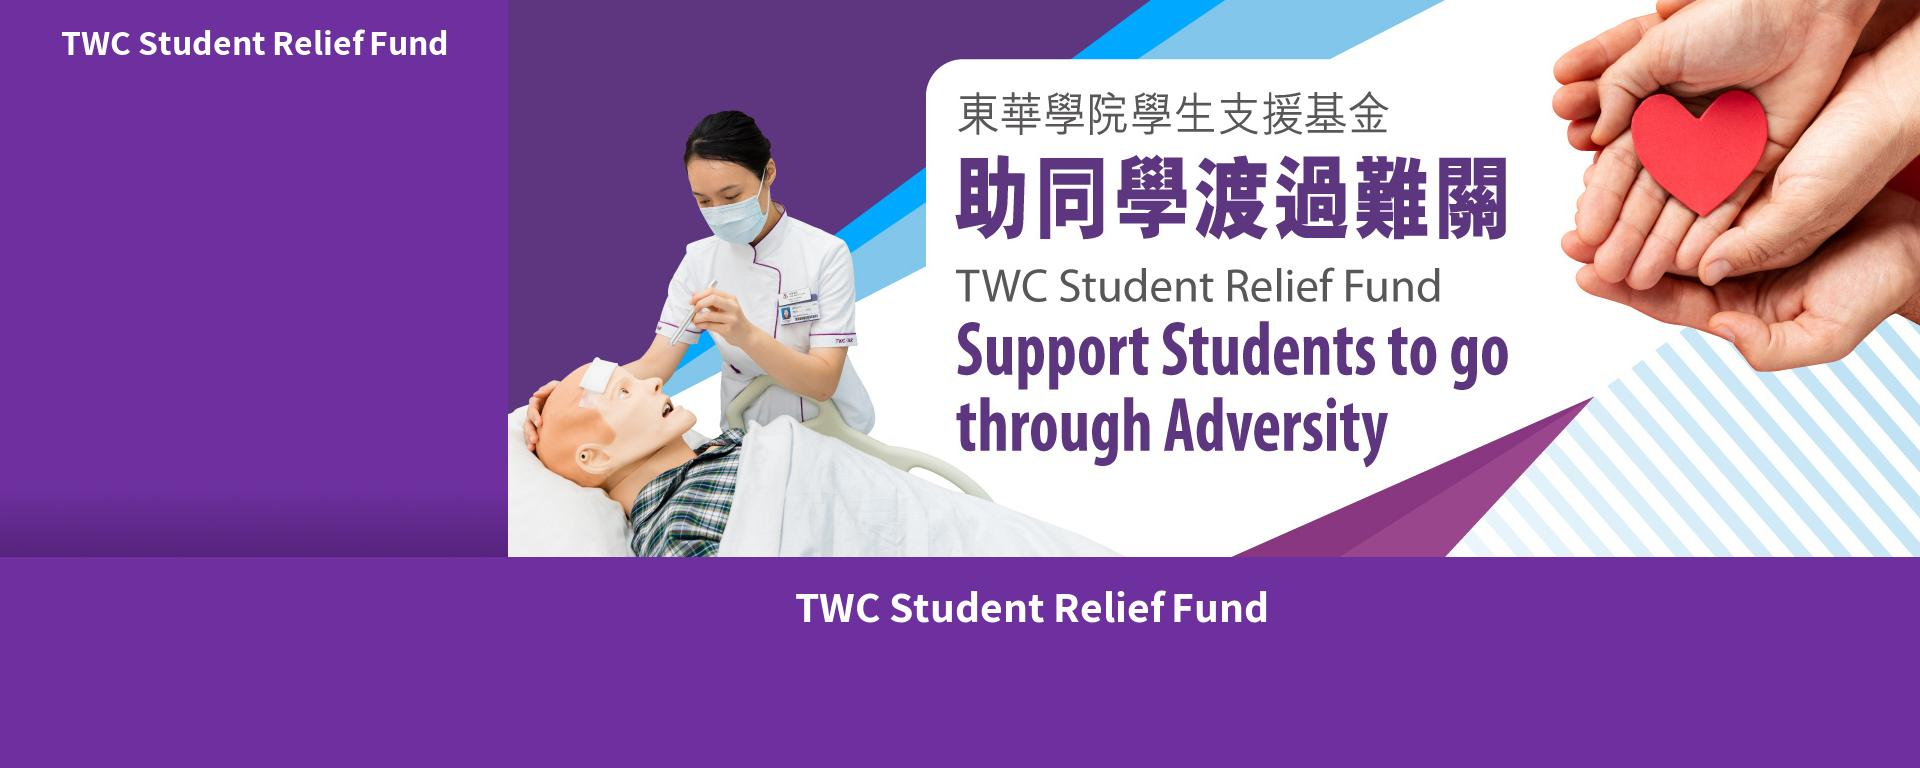 TWC Student Relief Fund